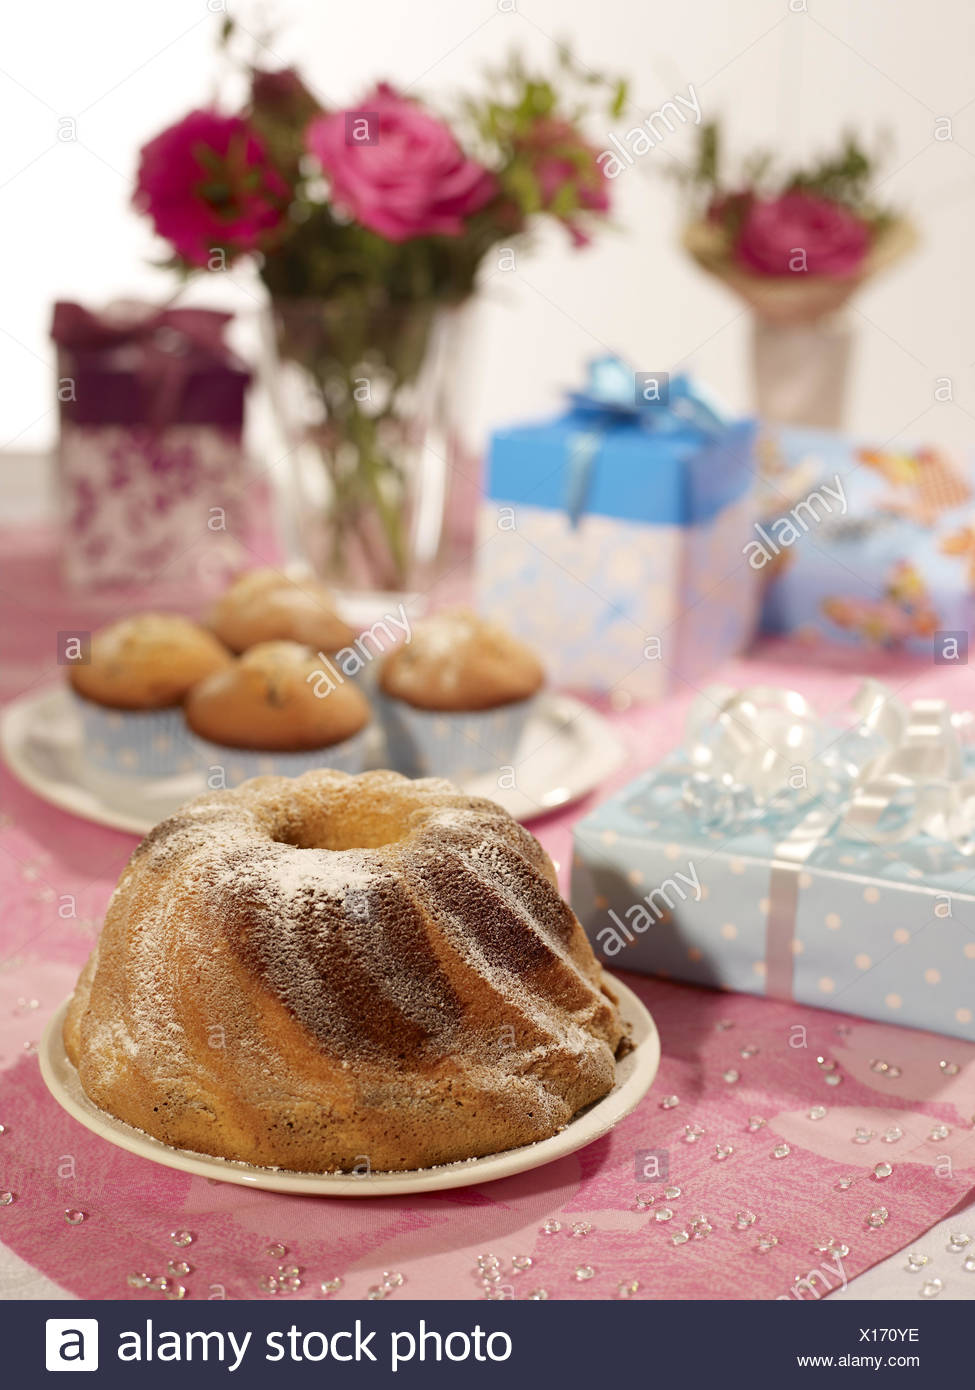 Birthday Cakes Muffin Presents Flowers Cakes Marble Cakes